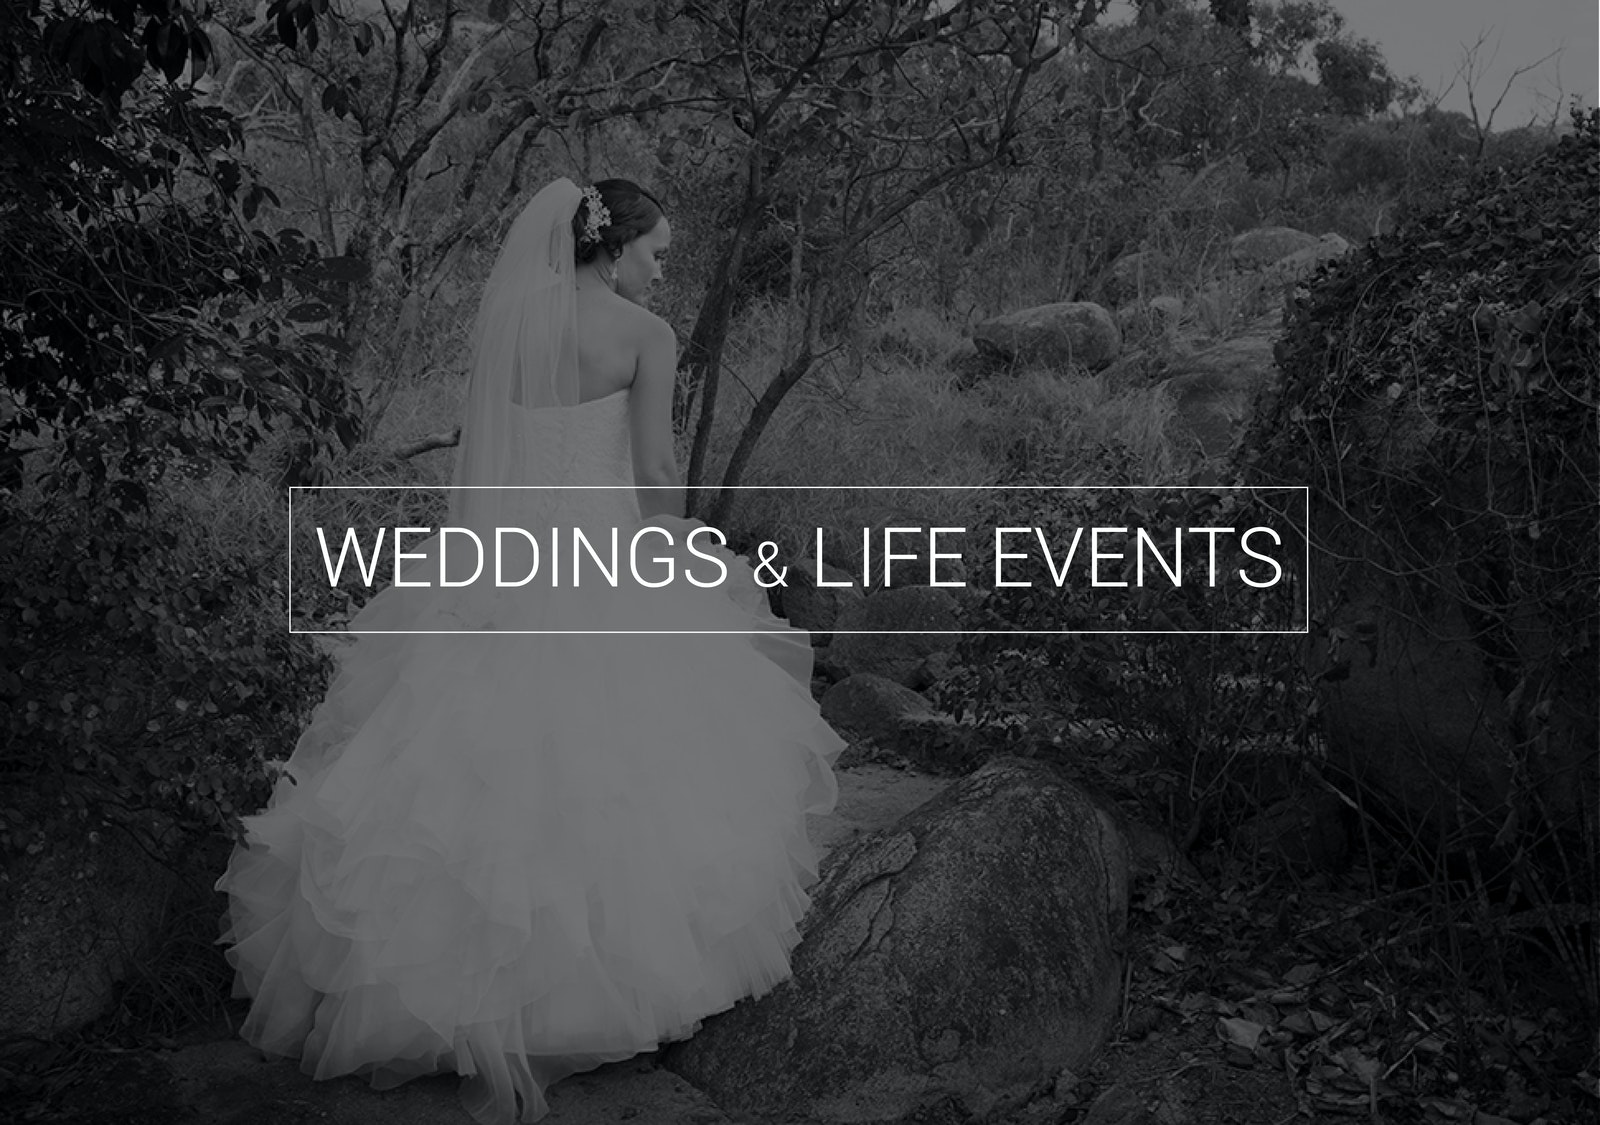 Weddings & Life Events